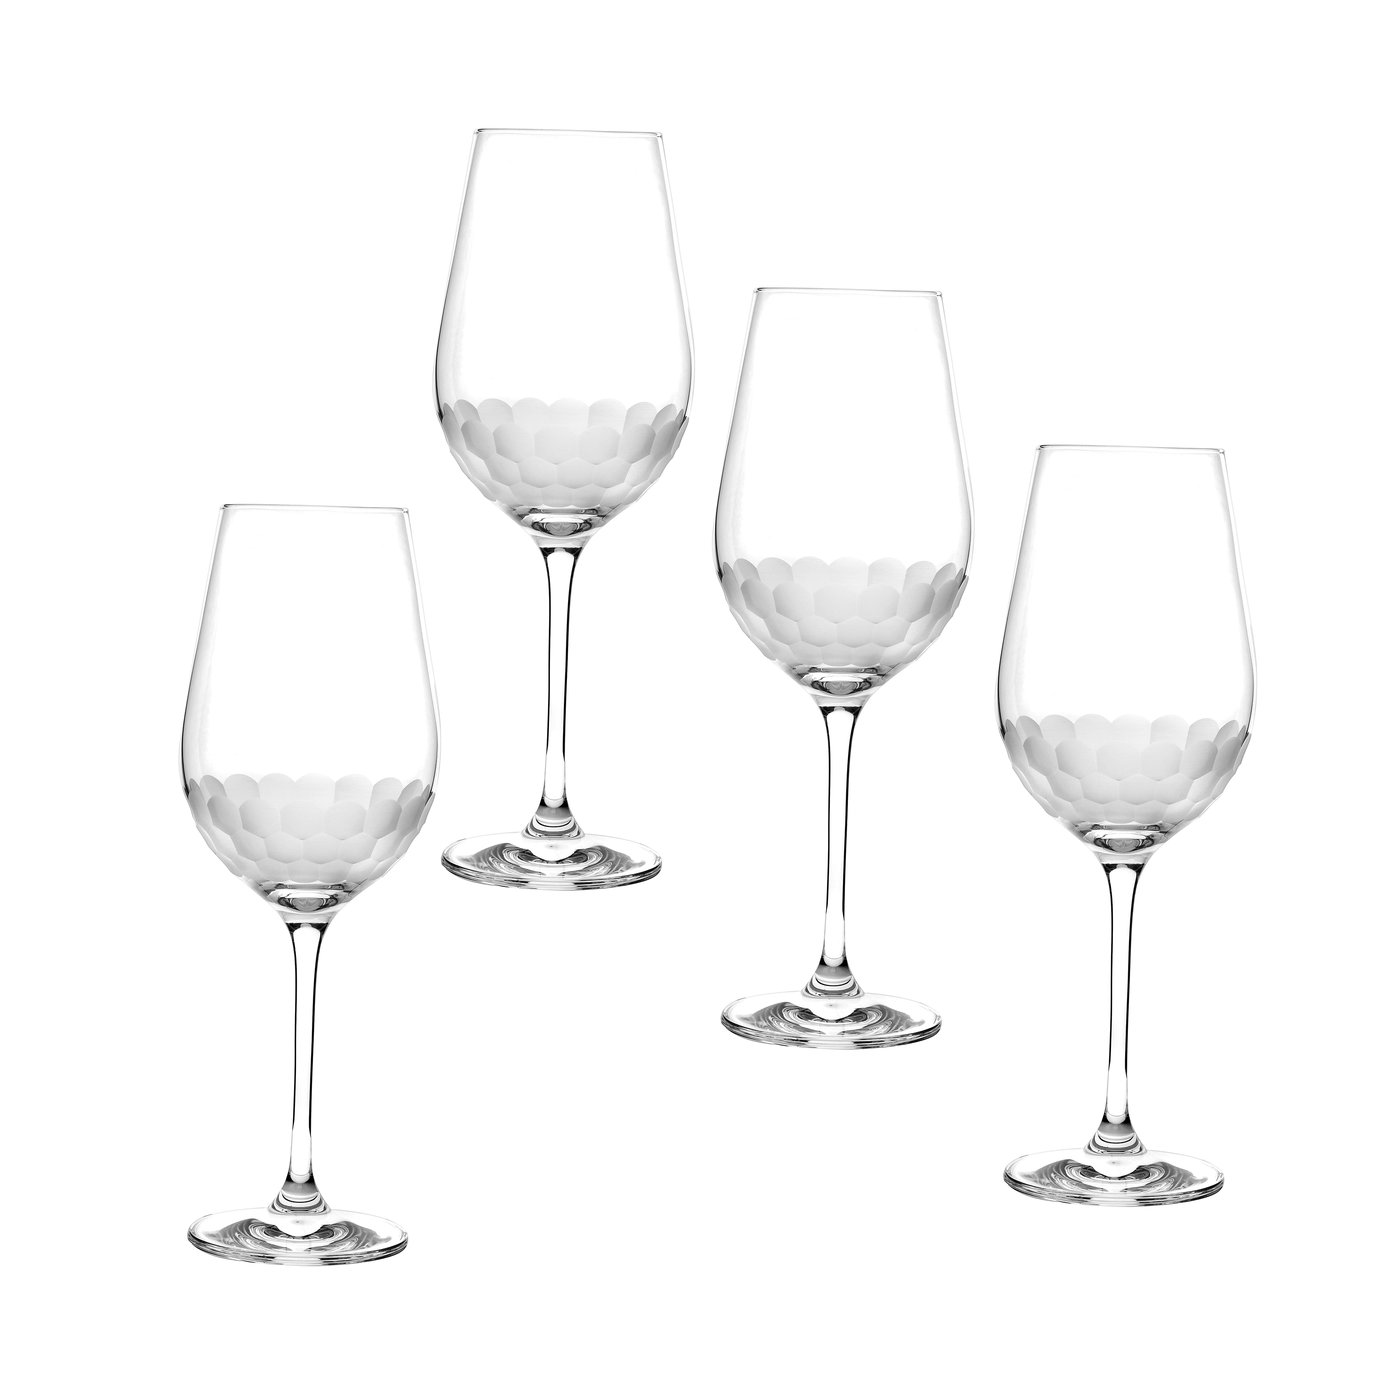 Droplet Glassware - New 2016